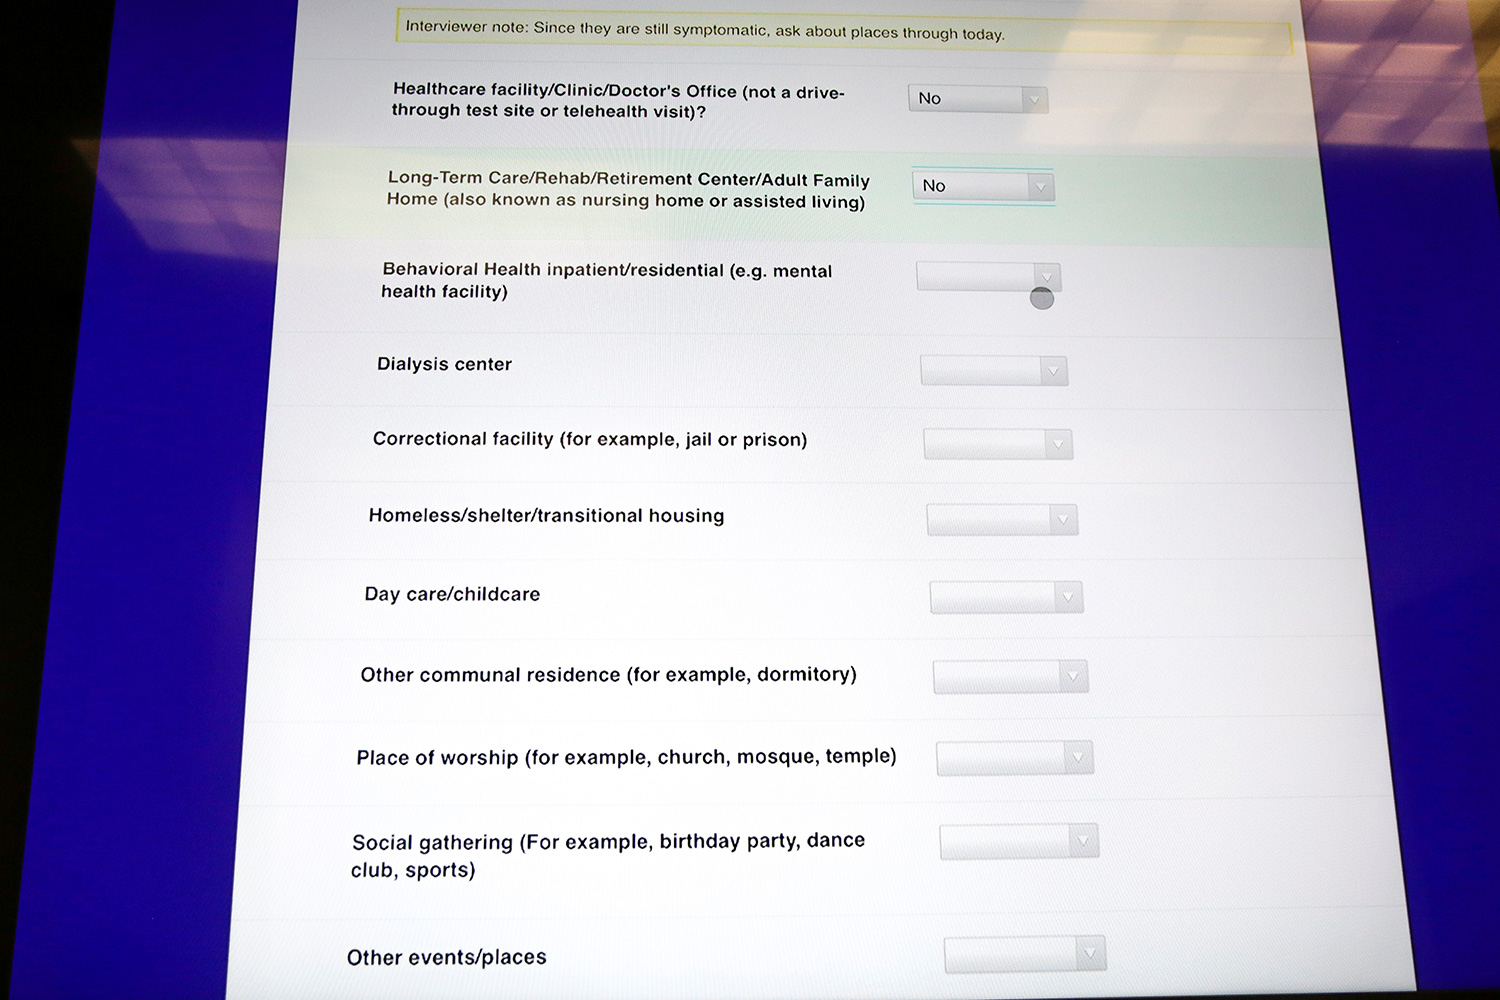 The photo shows a computer screen with questions on it.